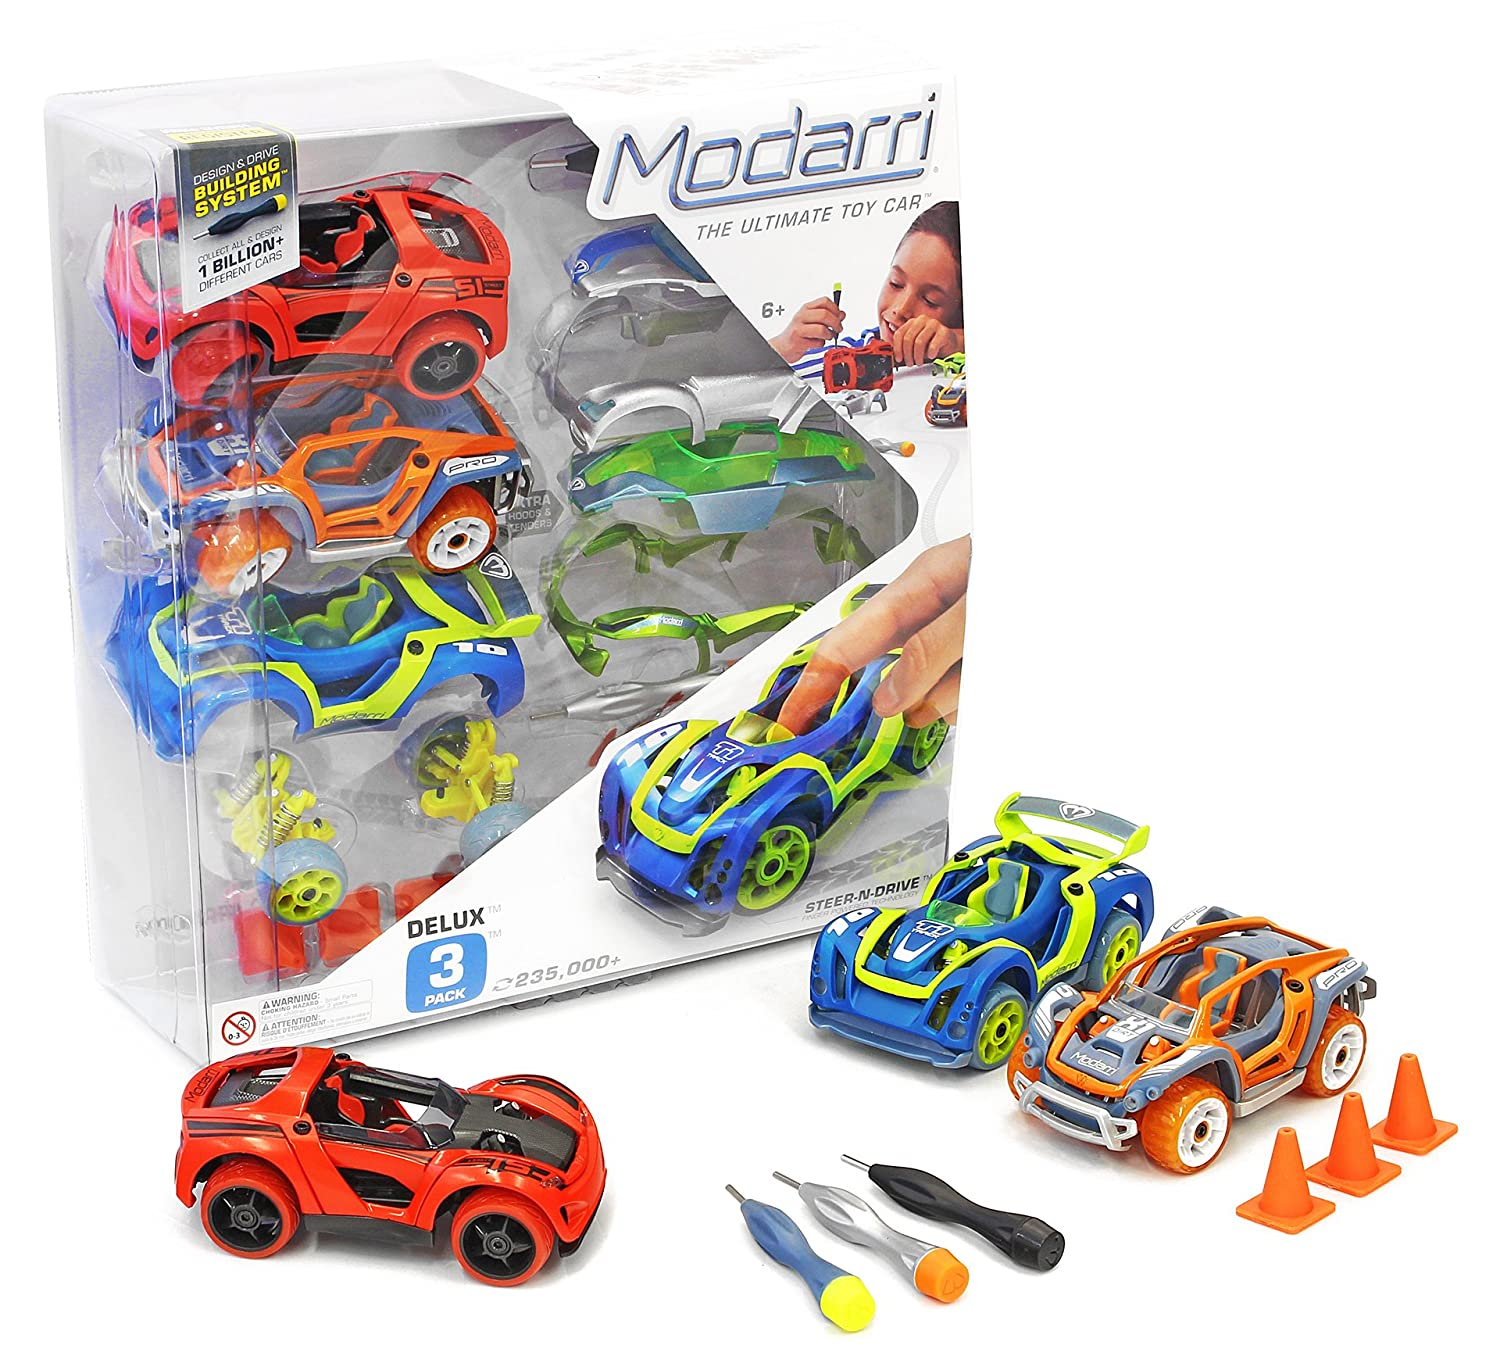 Modarri Deluxe Build Your Car Kit Toy Set (S1, X1, T1), Ultimate Toy Car, Make Your Own Car Toy for Thousands of Designs, Real Steering and Suspension, Educational Take Apart Toy Car for Kids, 3 Piece 1102-01